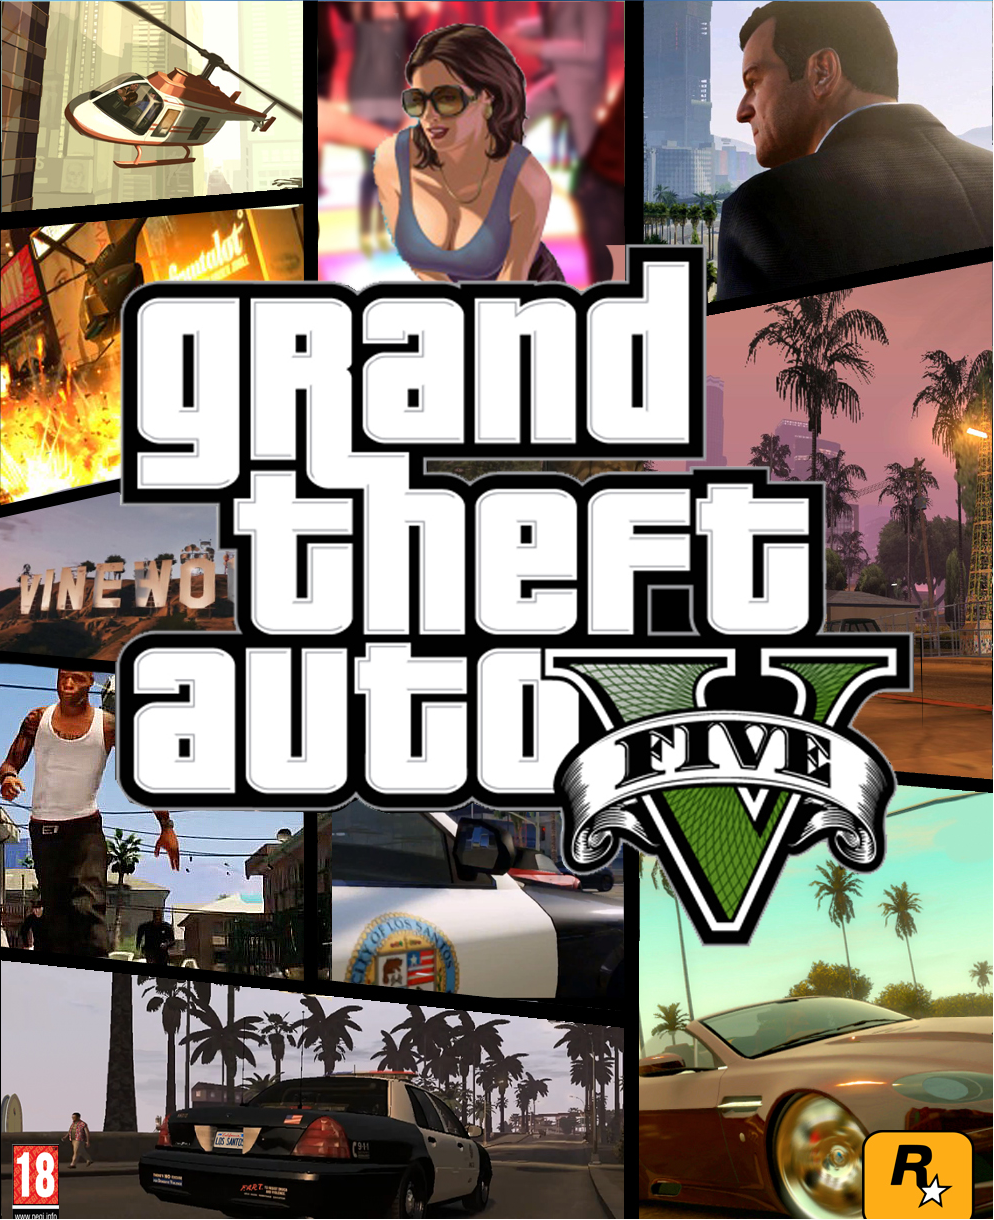 It works you grand theft auto konoha city download pc